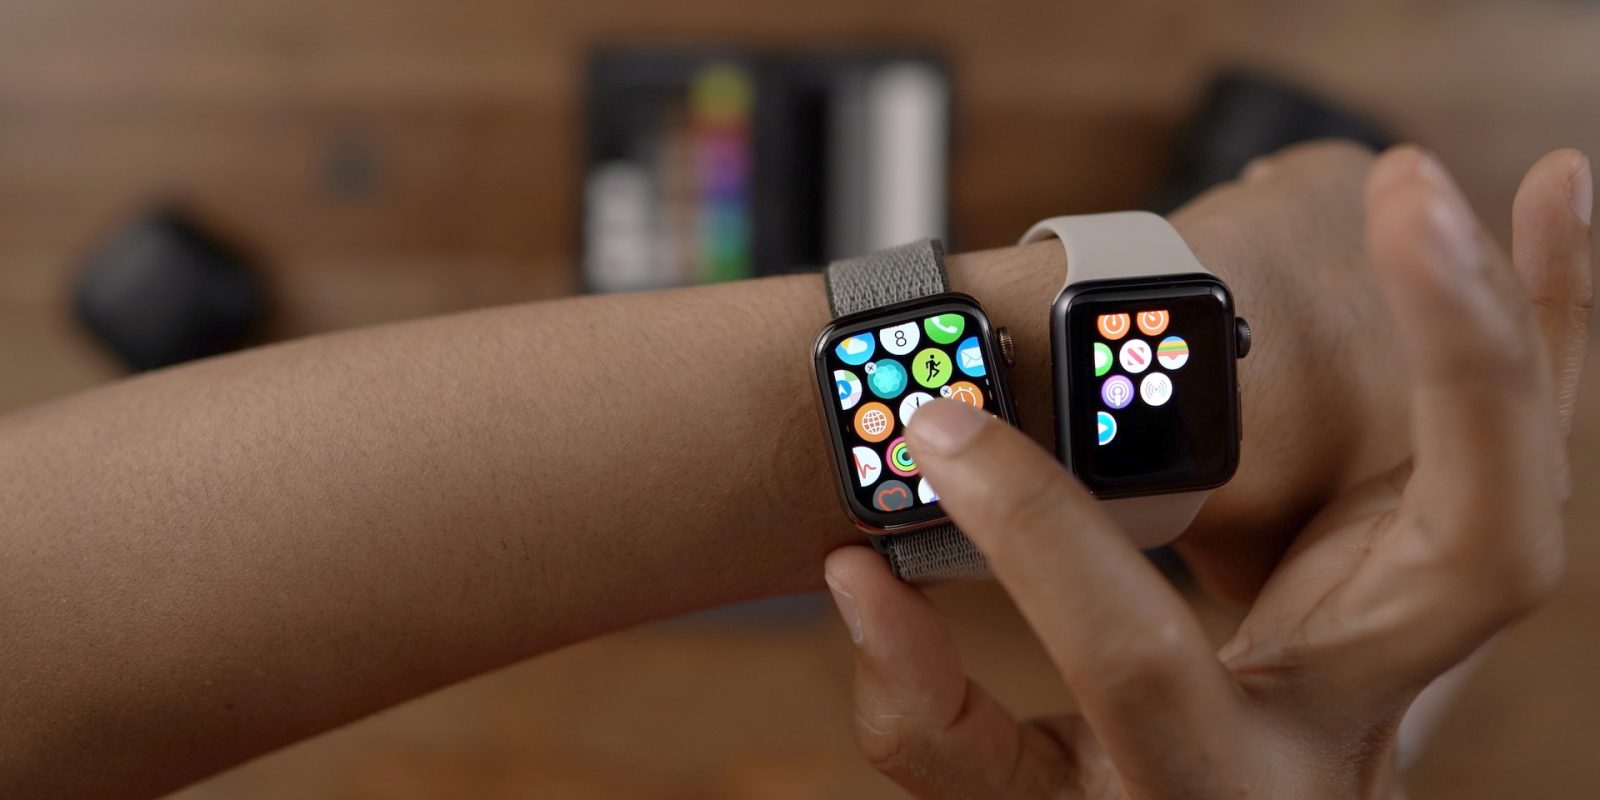 watchOS 6: Release date, rumors, compatibility, features